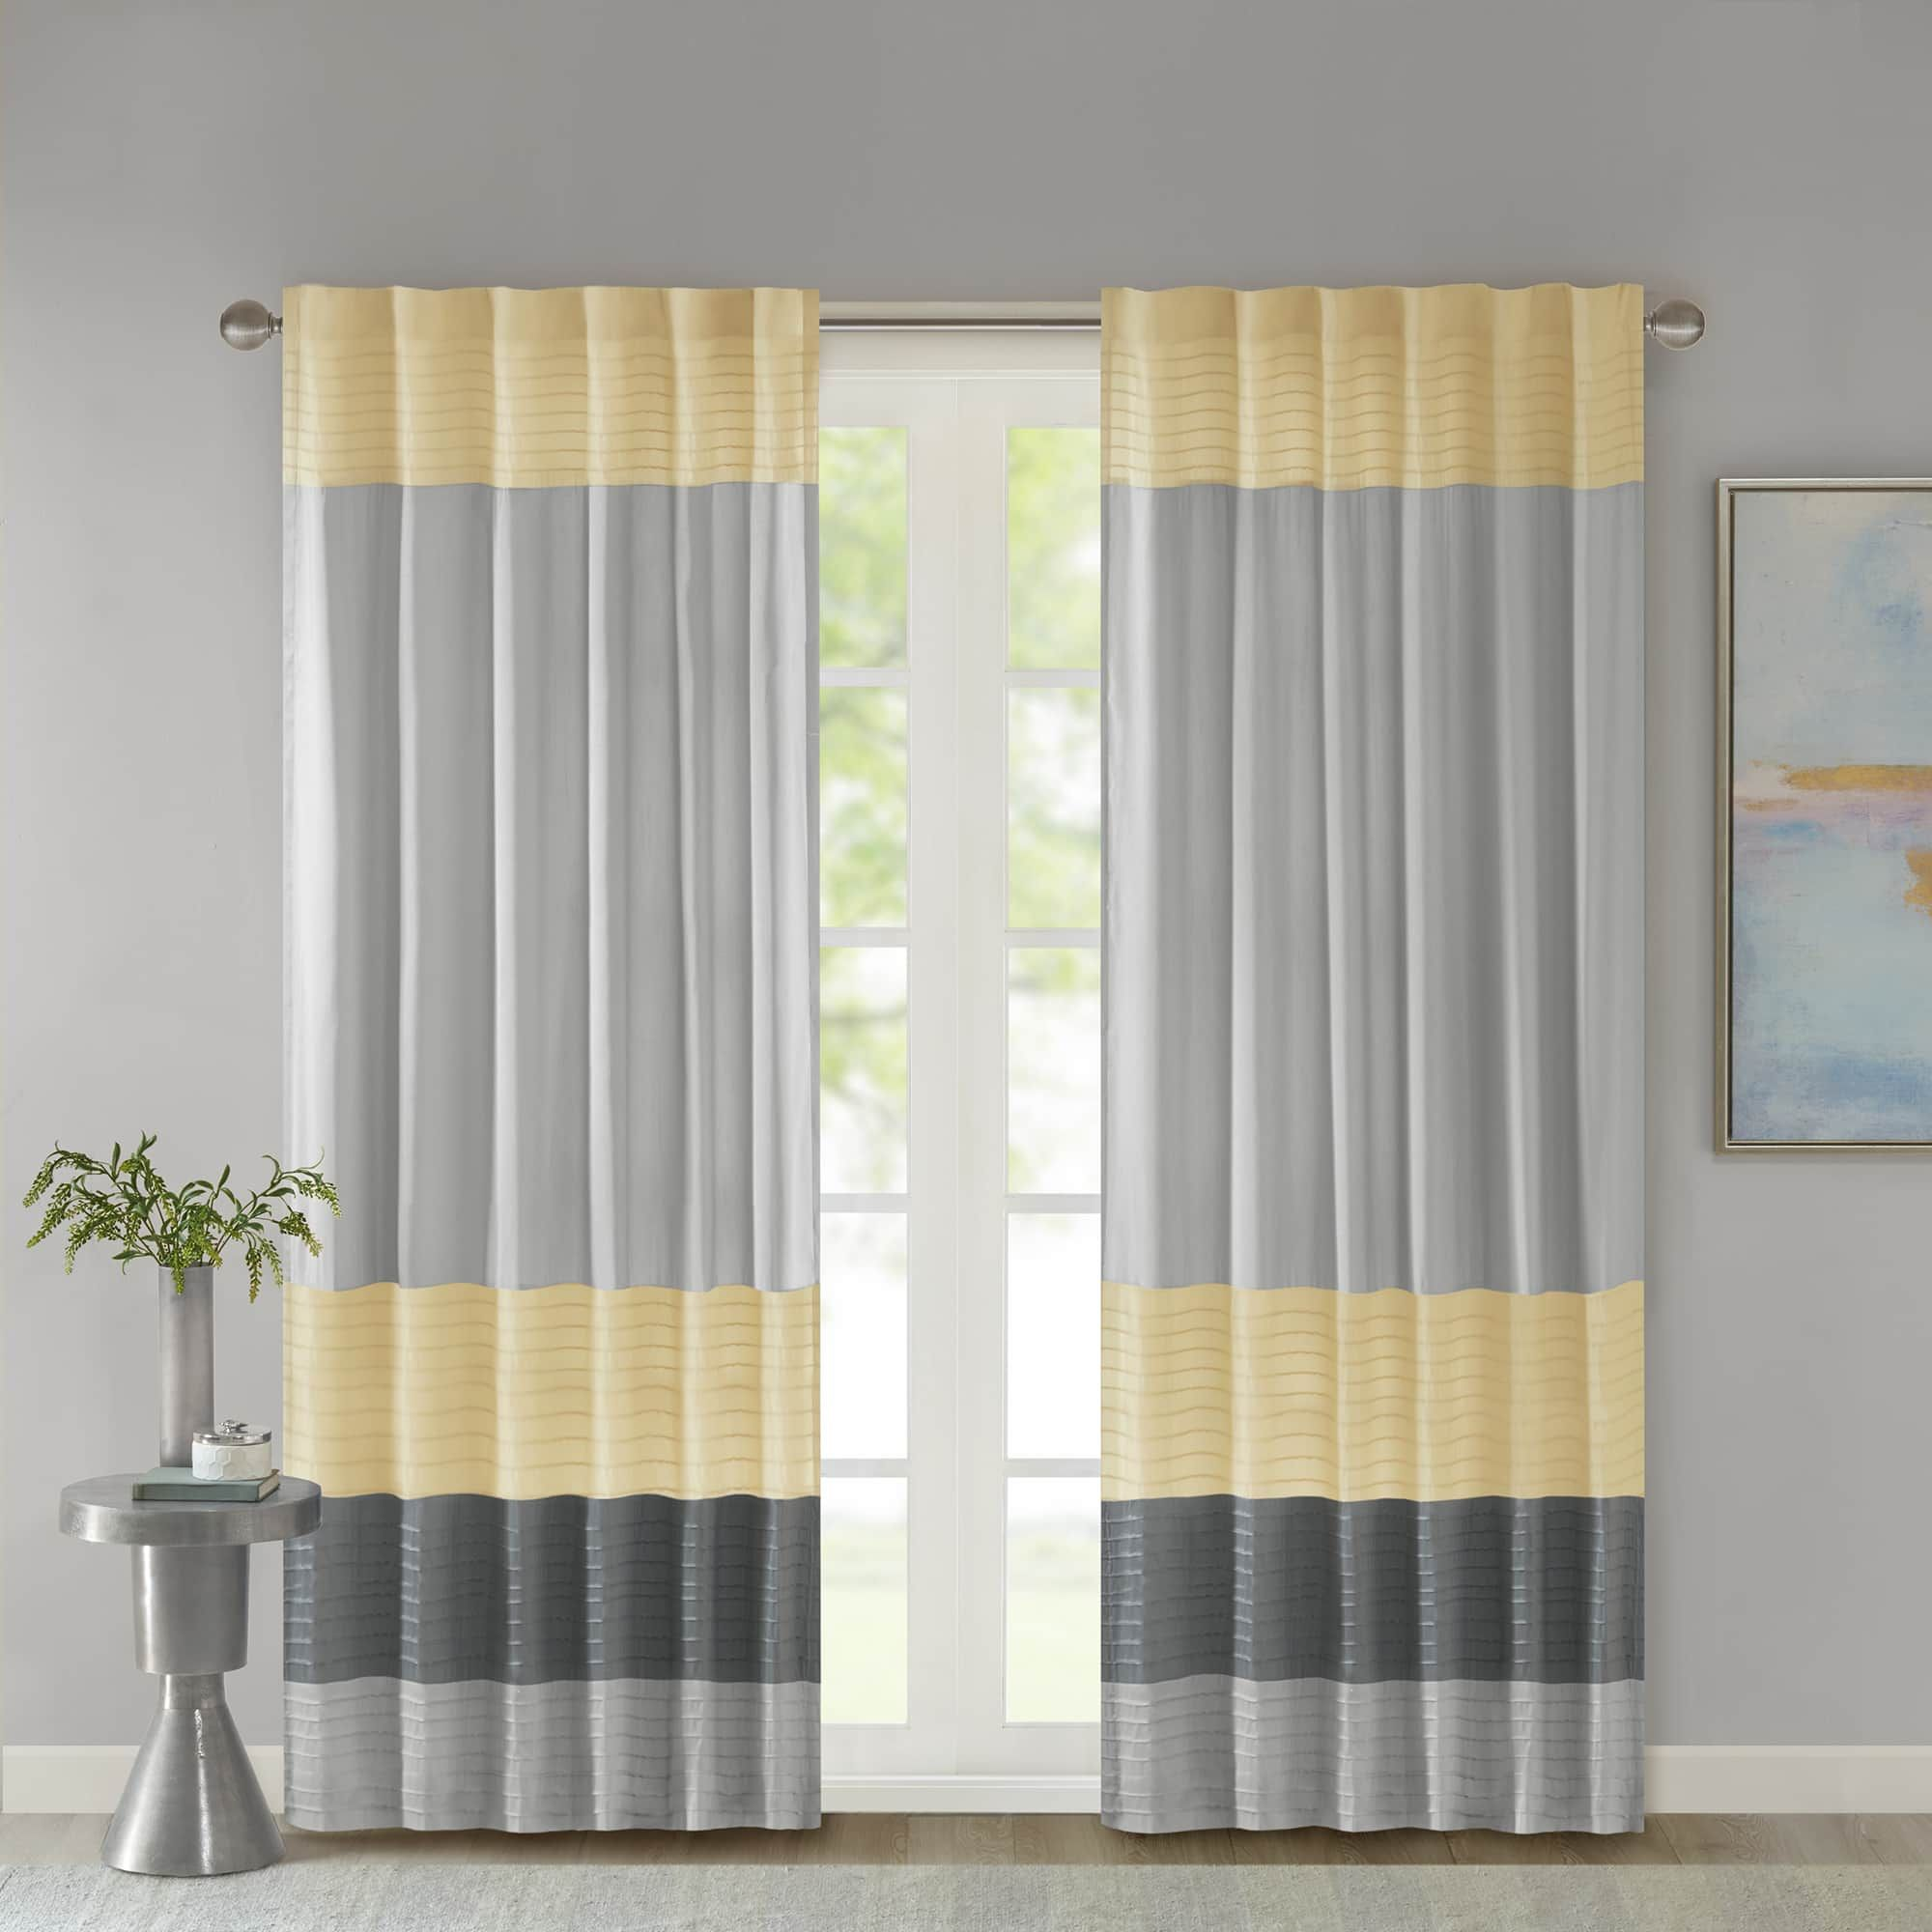 Madison Park Infinity Polyoni Pintuck Single Window Curtain Panel Curtains Panel Curtains Drapes Curtains